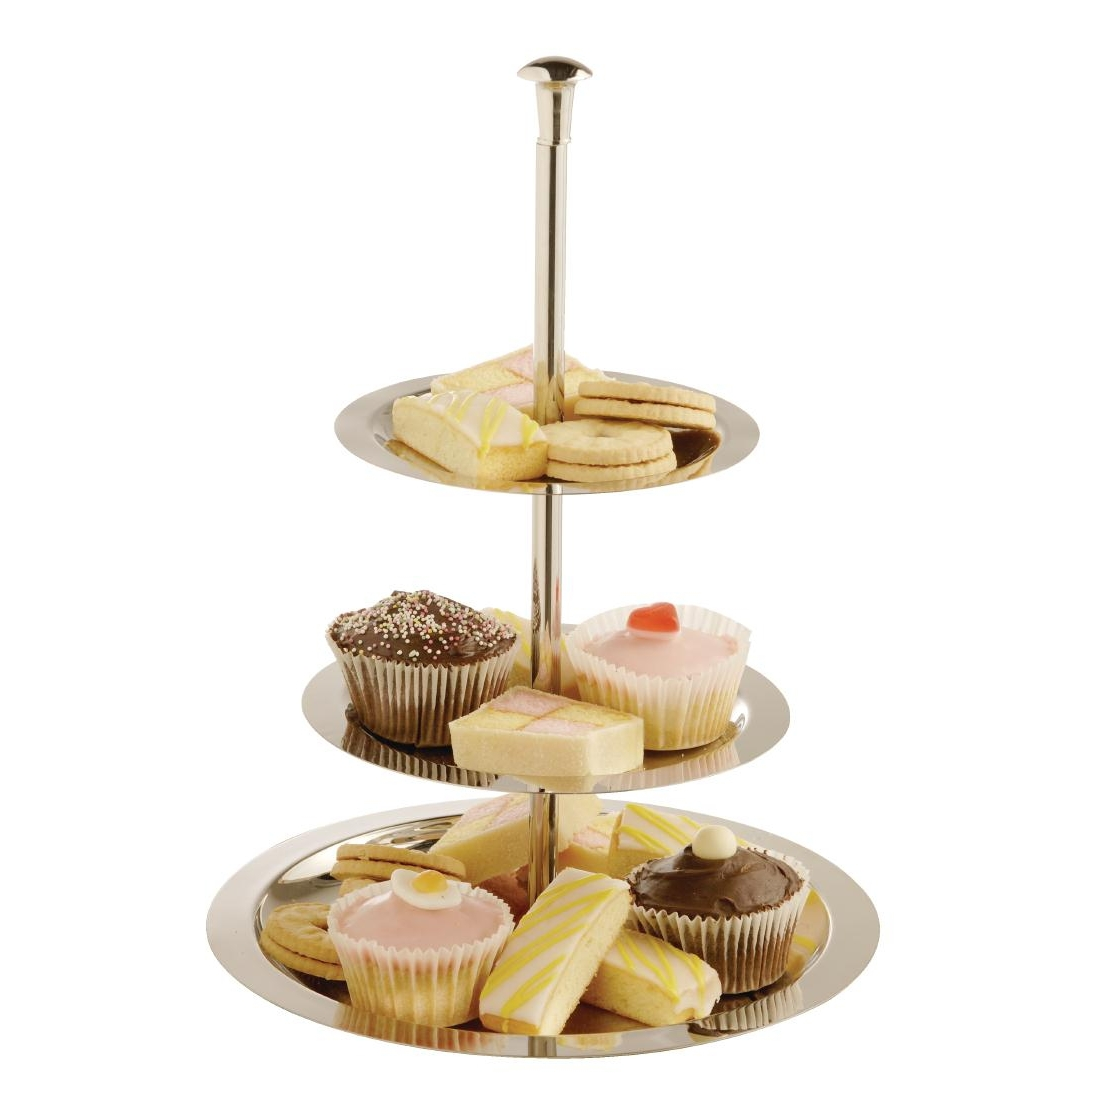 Stainless Steel 3 Tier Afternoon Tea Stand 280mm by Olympia-U802 - Smart Hospitality Supplies  sc 1 st  Smart Hospitality Supplies & Stainless Steel 3 Tier Afternoon Tea Stand 280mm by Olympia-U802 ...